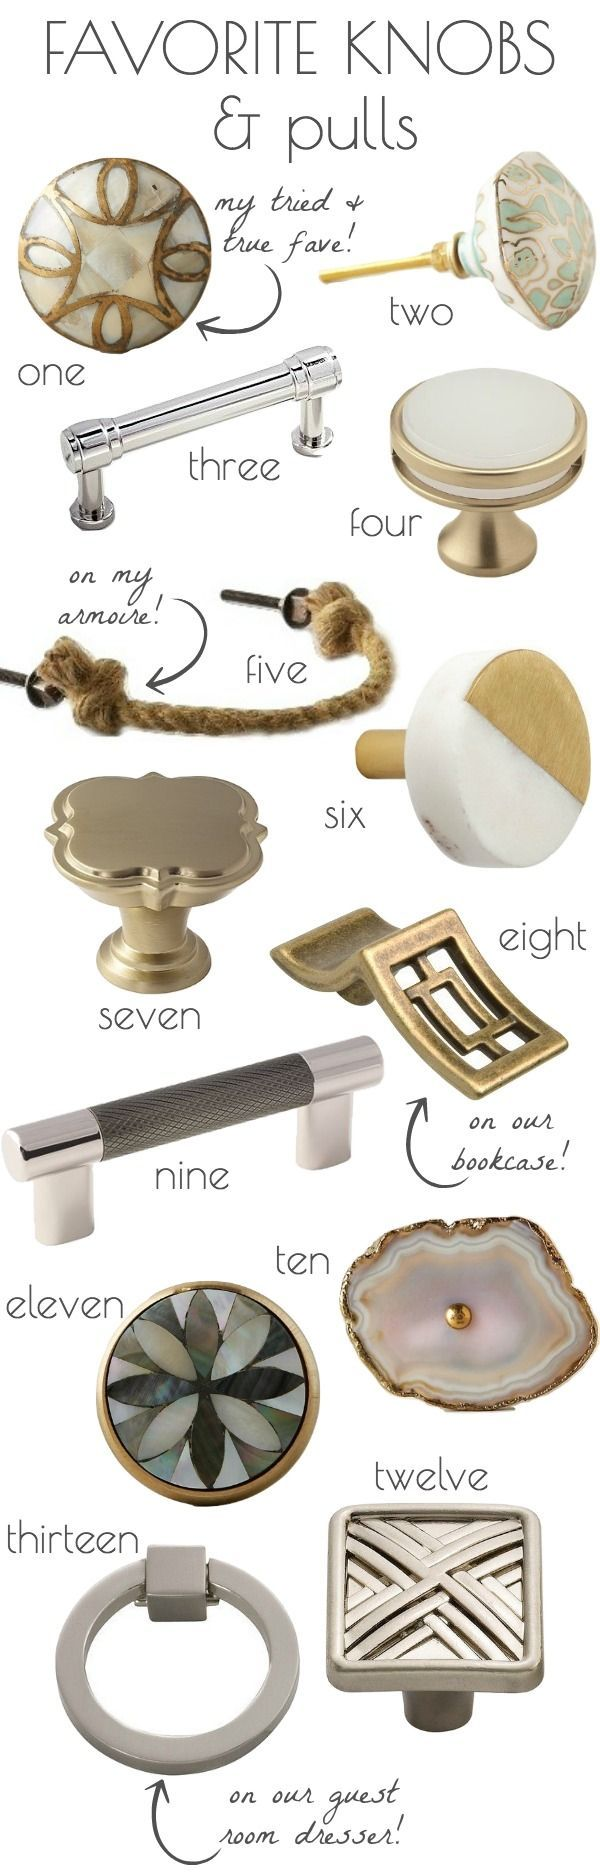 Kitchen and bathroom cabinet knobs and pulls that are stunners!